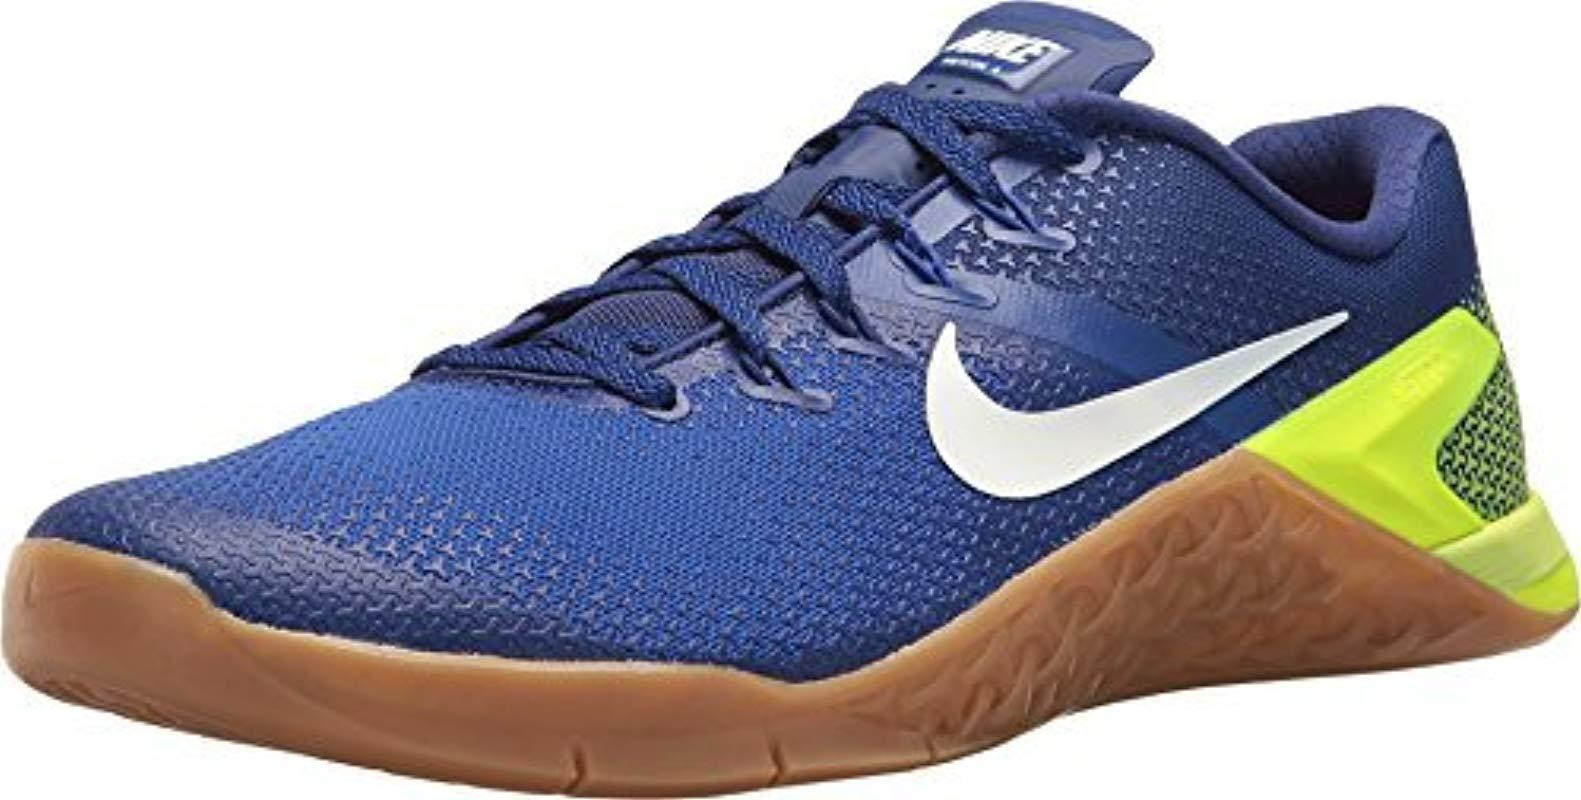 best service e5b94 64ae0 Nike Metcon 4 Competition Running Shoes in Blue for Men - Lyst